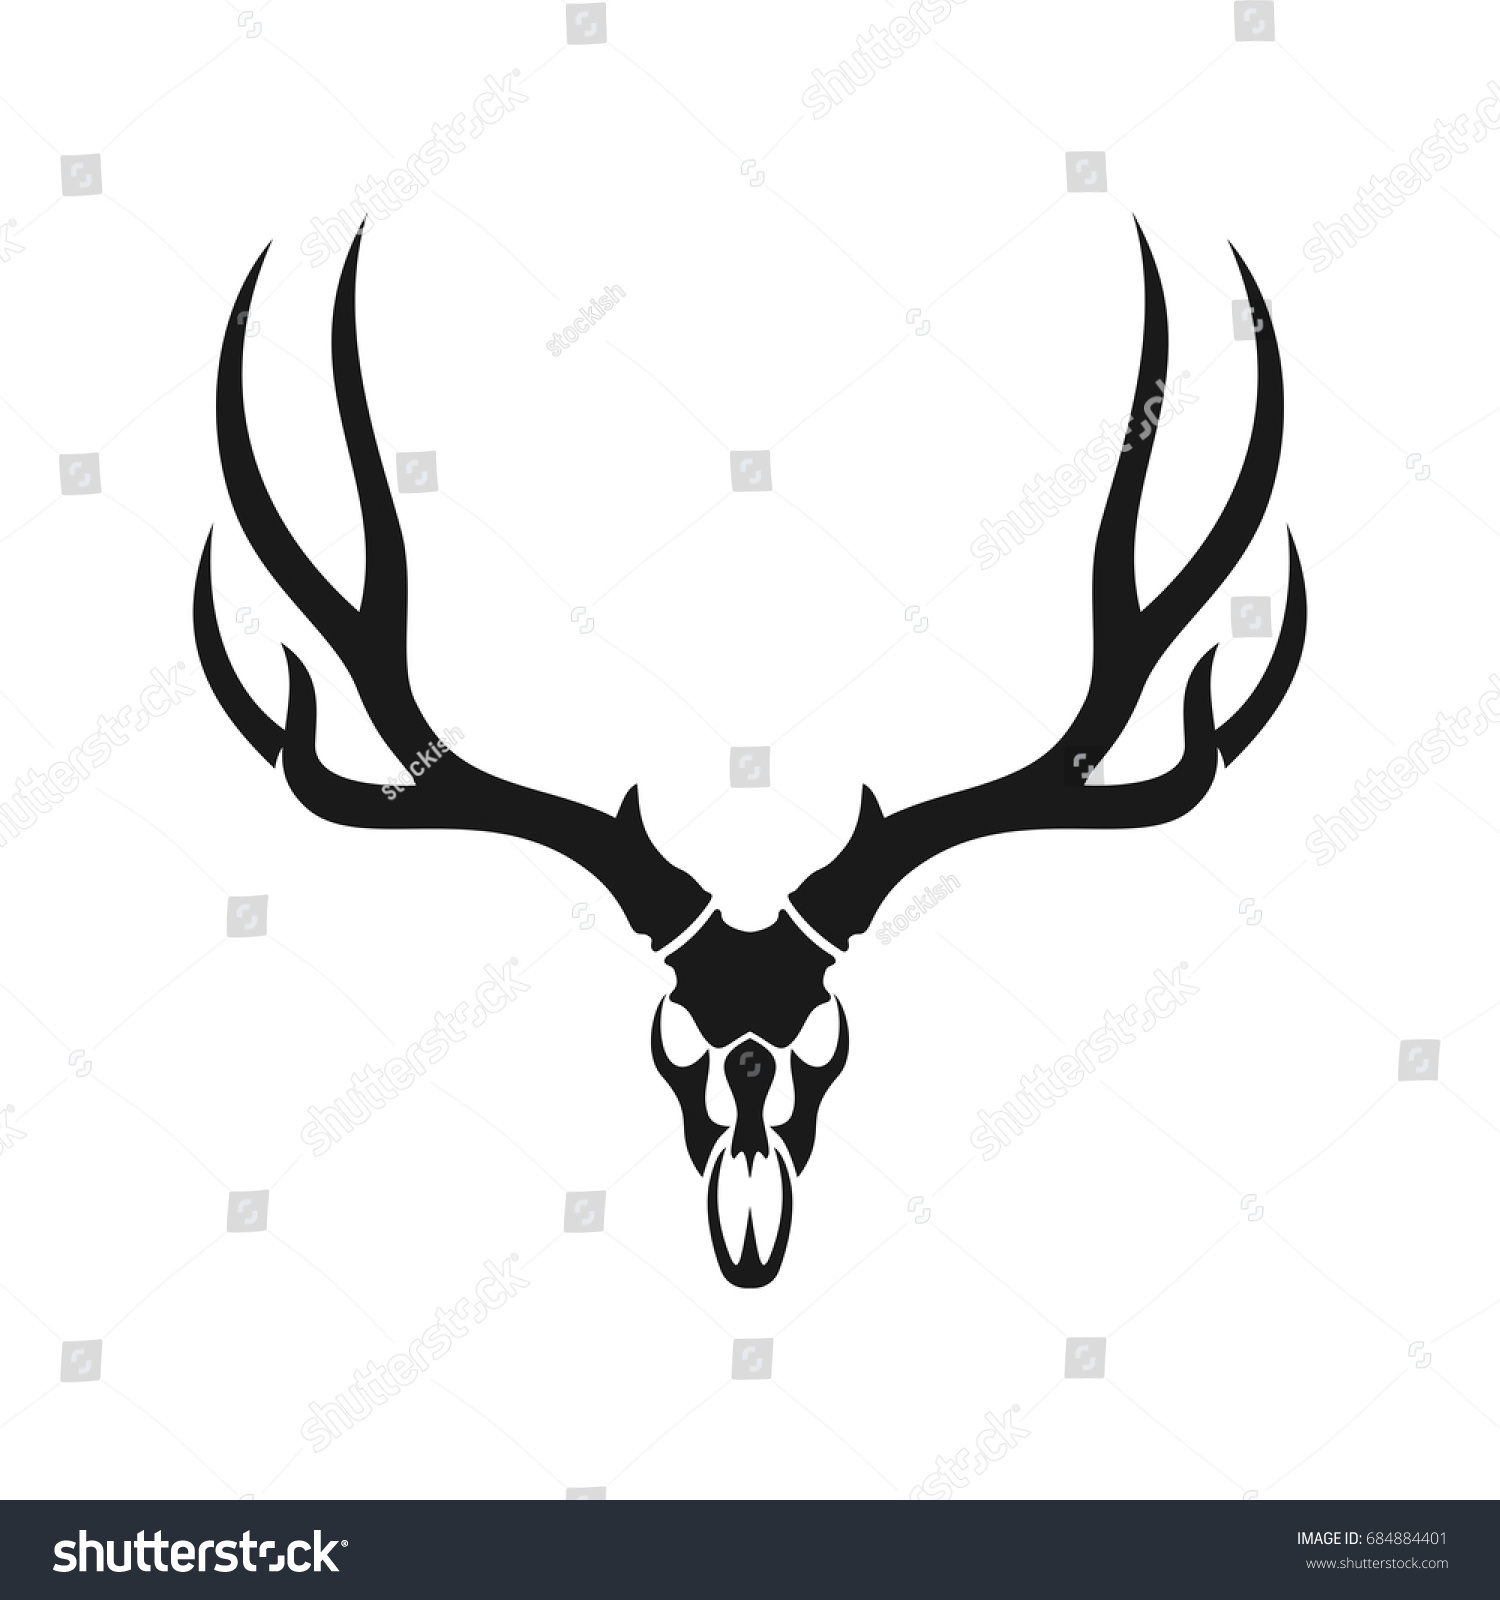 deer skull head vector logo stock vector 684884401 shutterstock rh shutterstock com deer head logo brand deer head logo designs